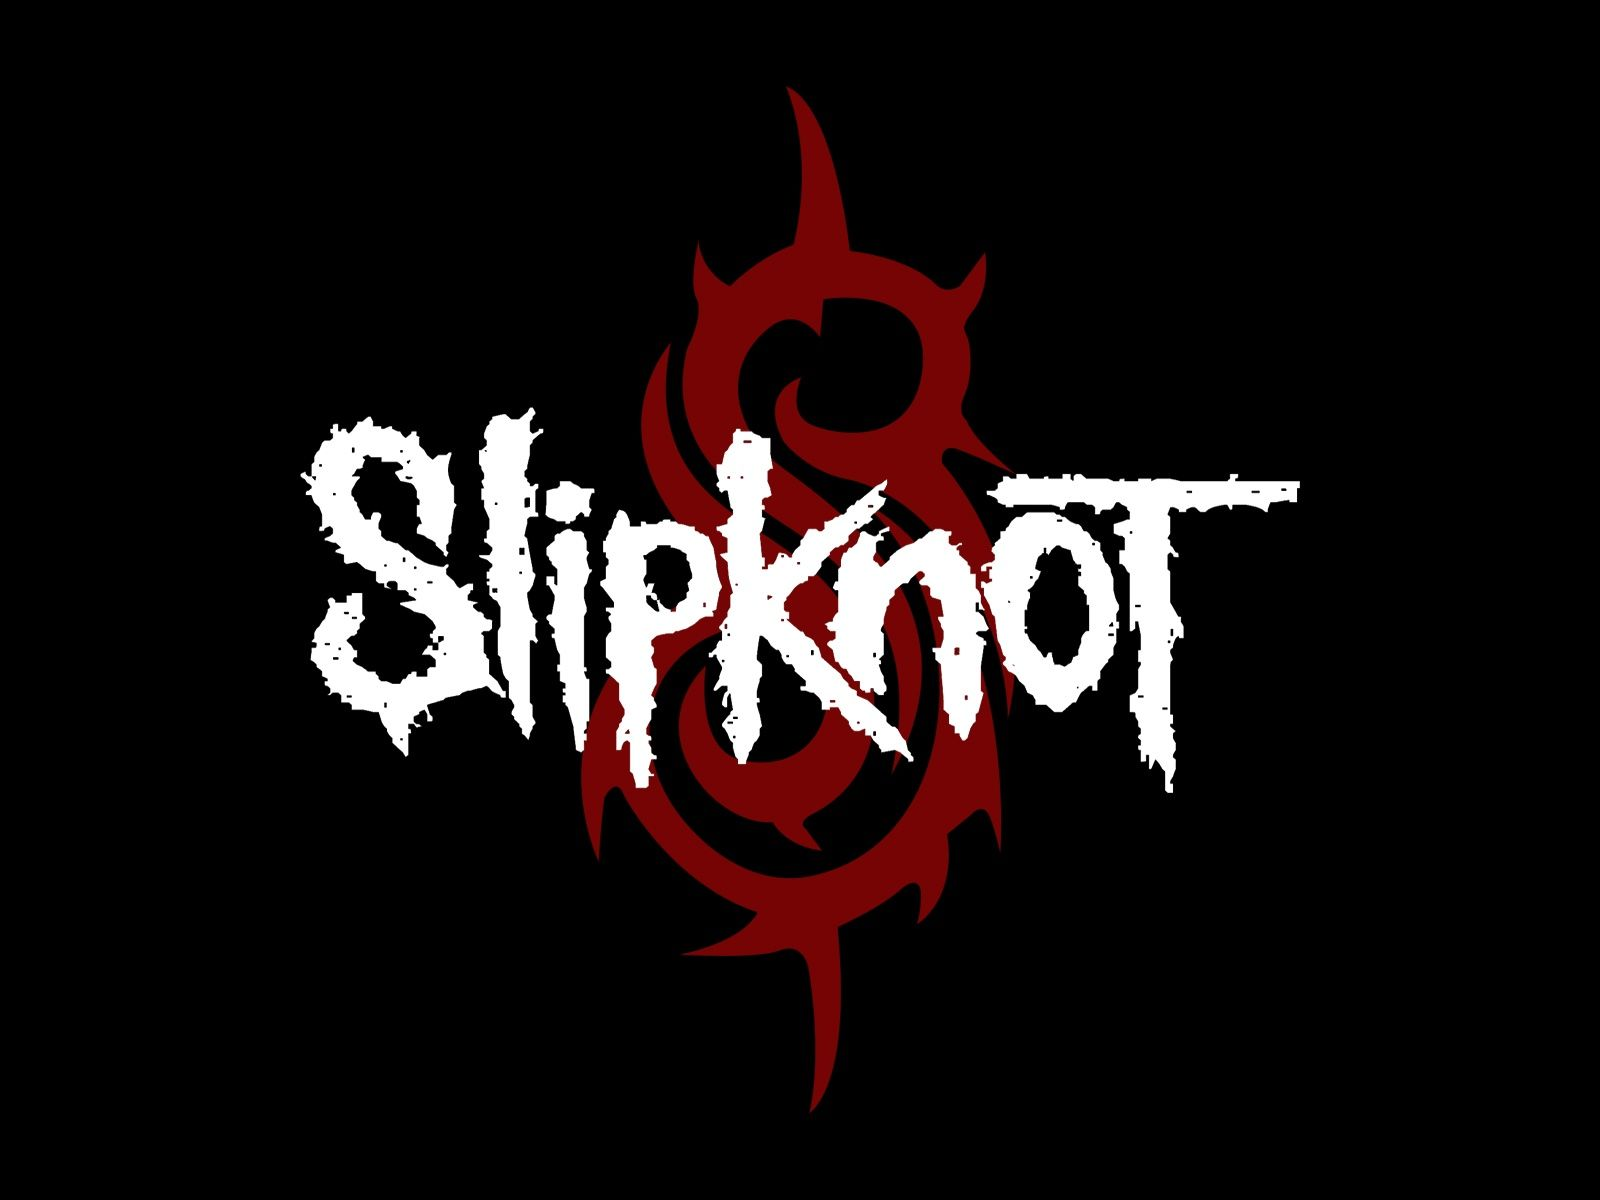 slipknot wallpaper and background image | 1600x1200 | id:849311